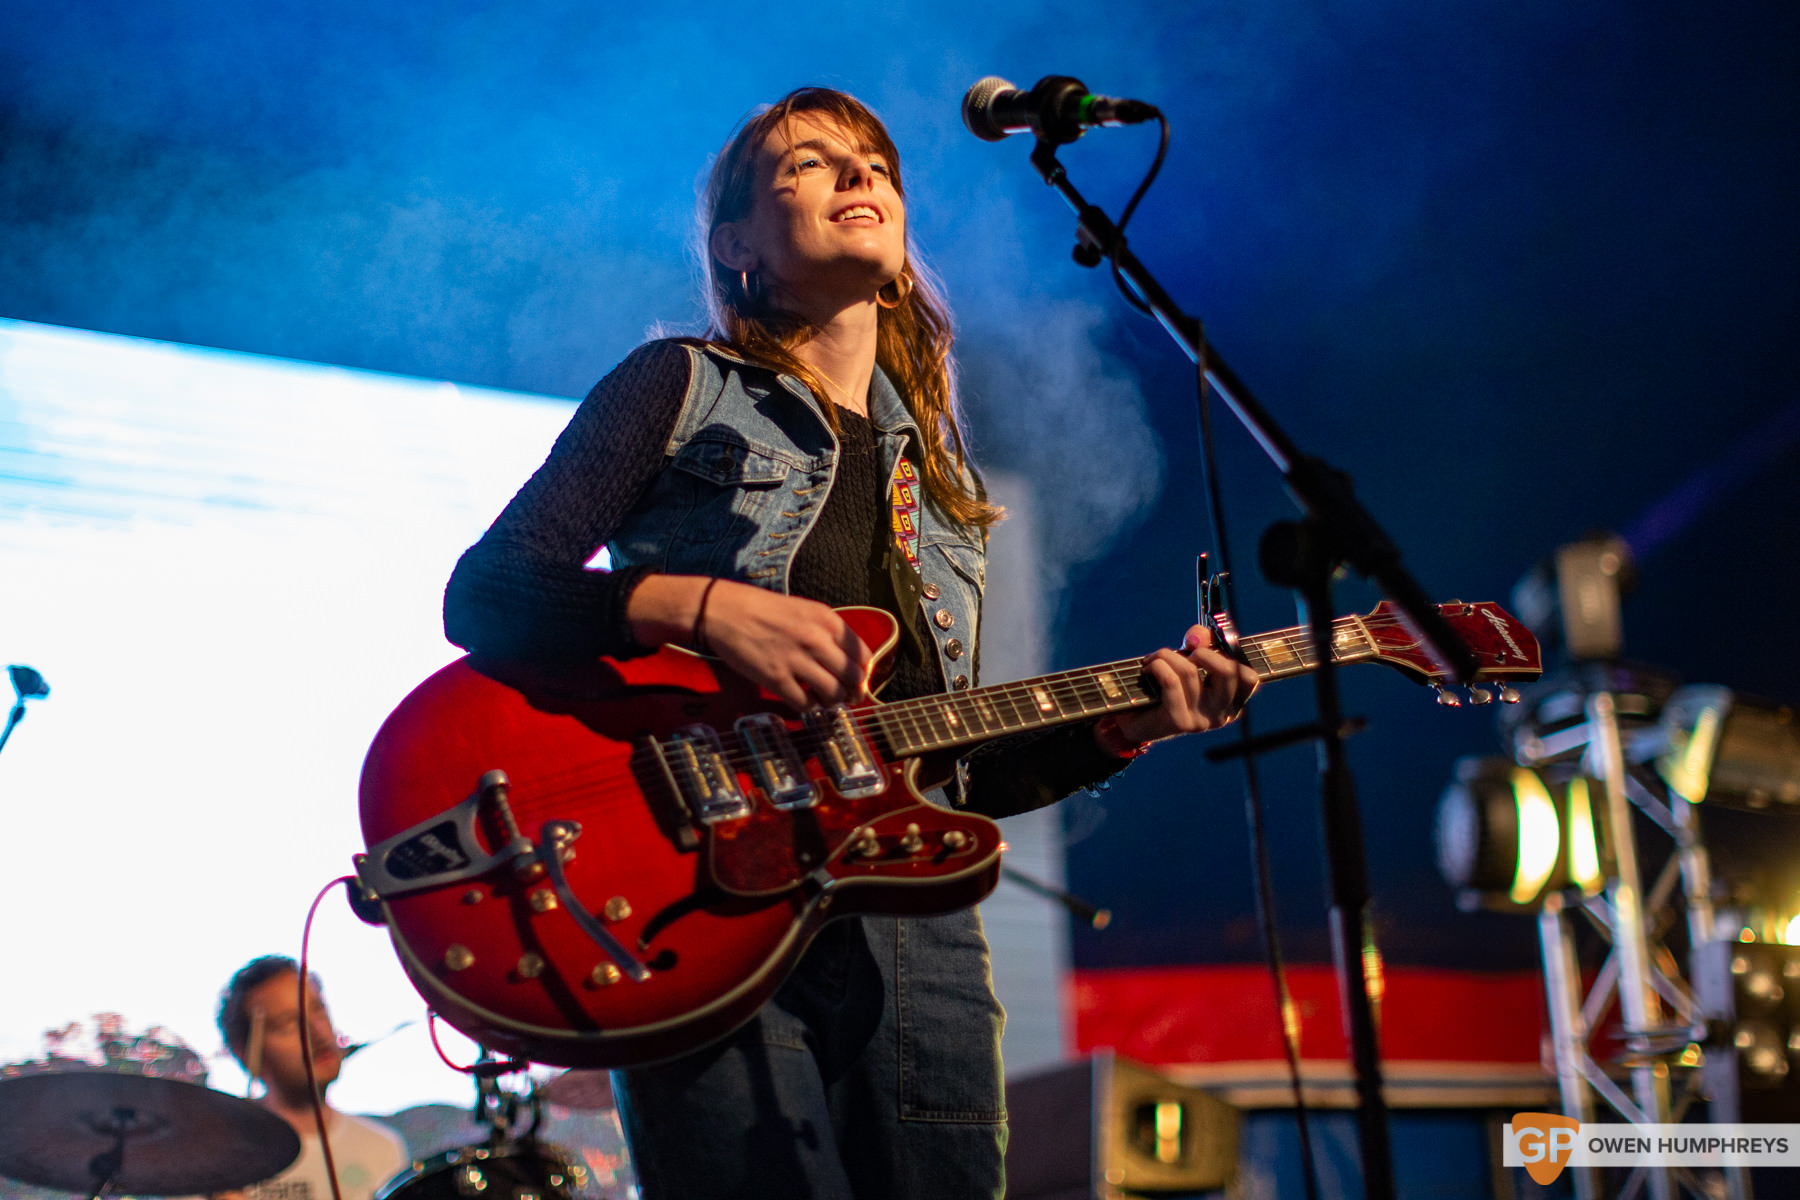 Angie Mcmahon at All Together Now 2019. Photo by Owen Humphreys. www.owen.ie